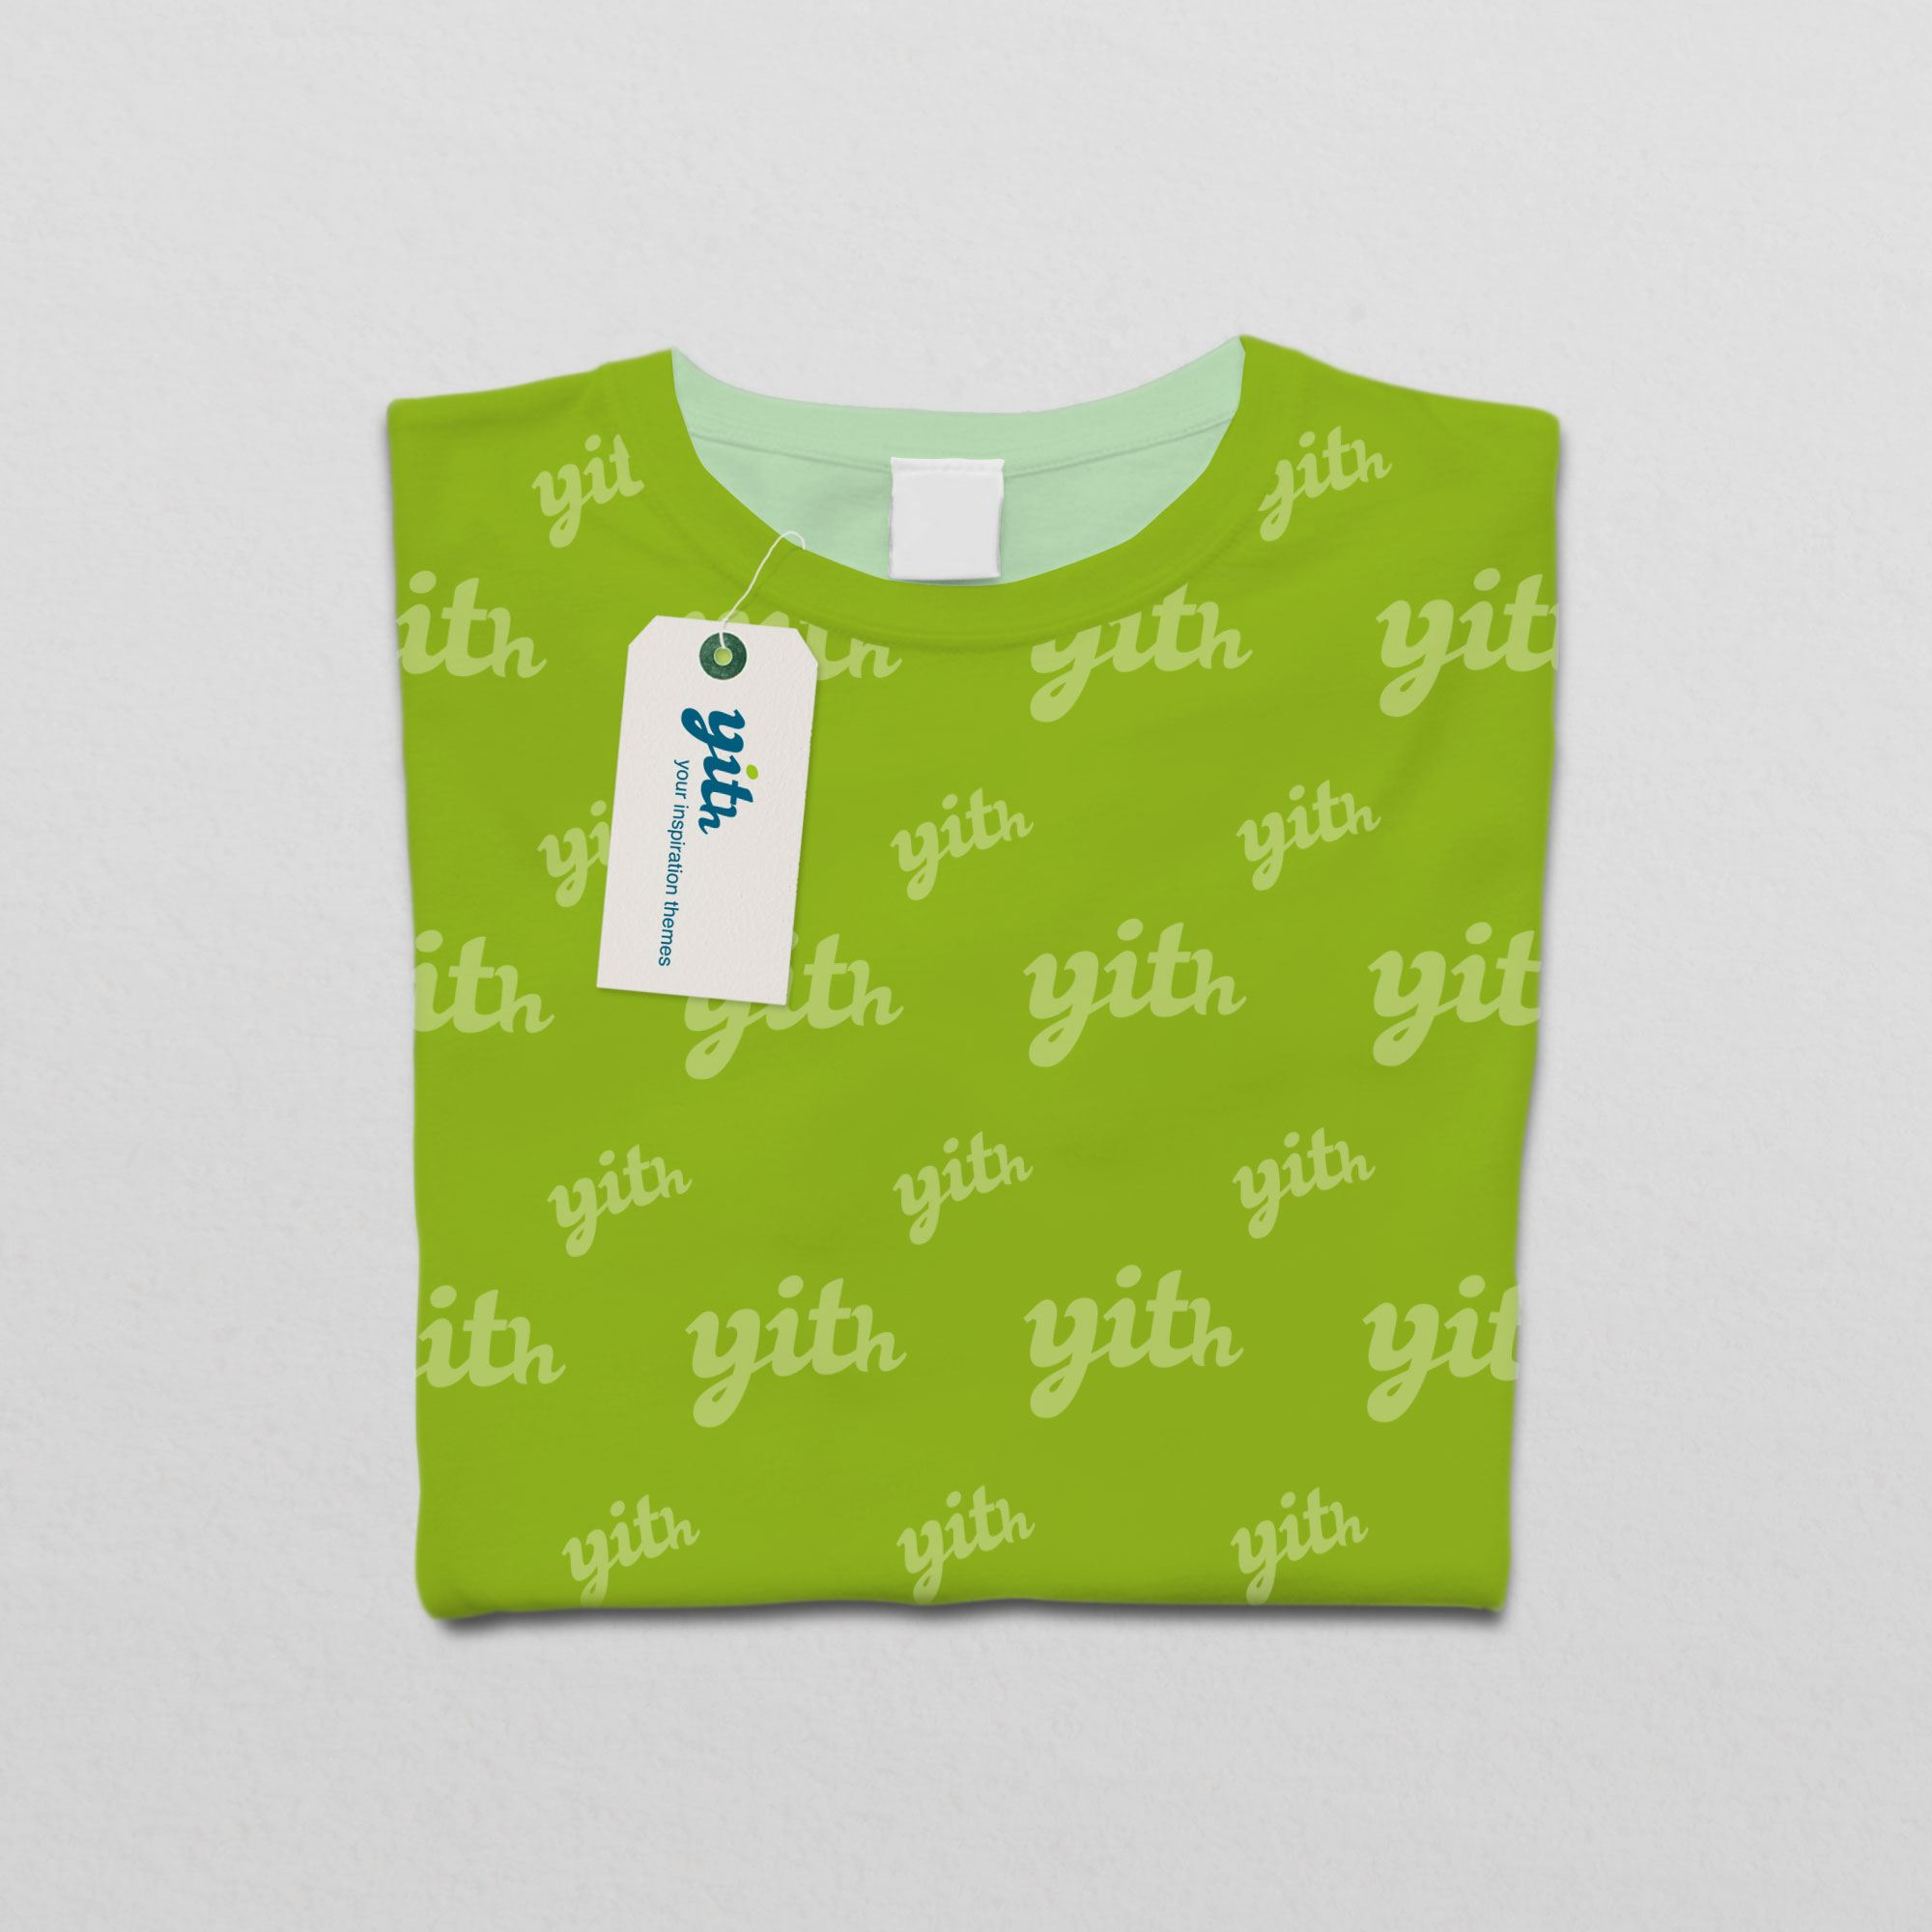 YITH Jersey - Green